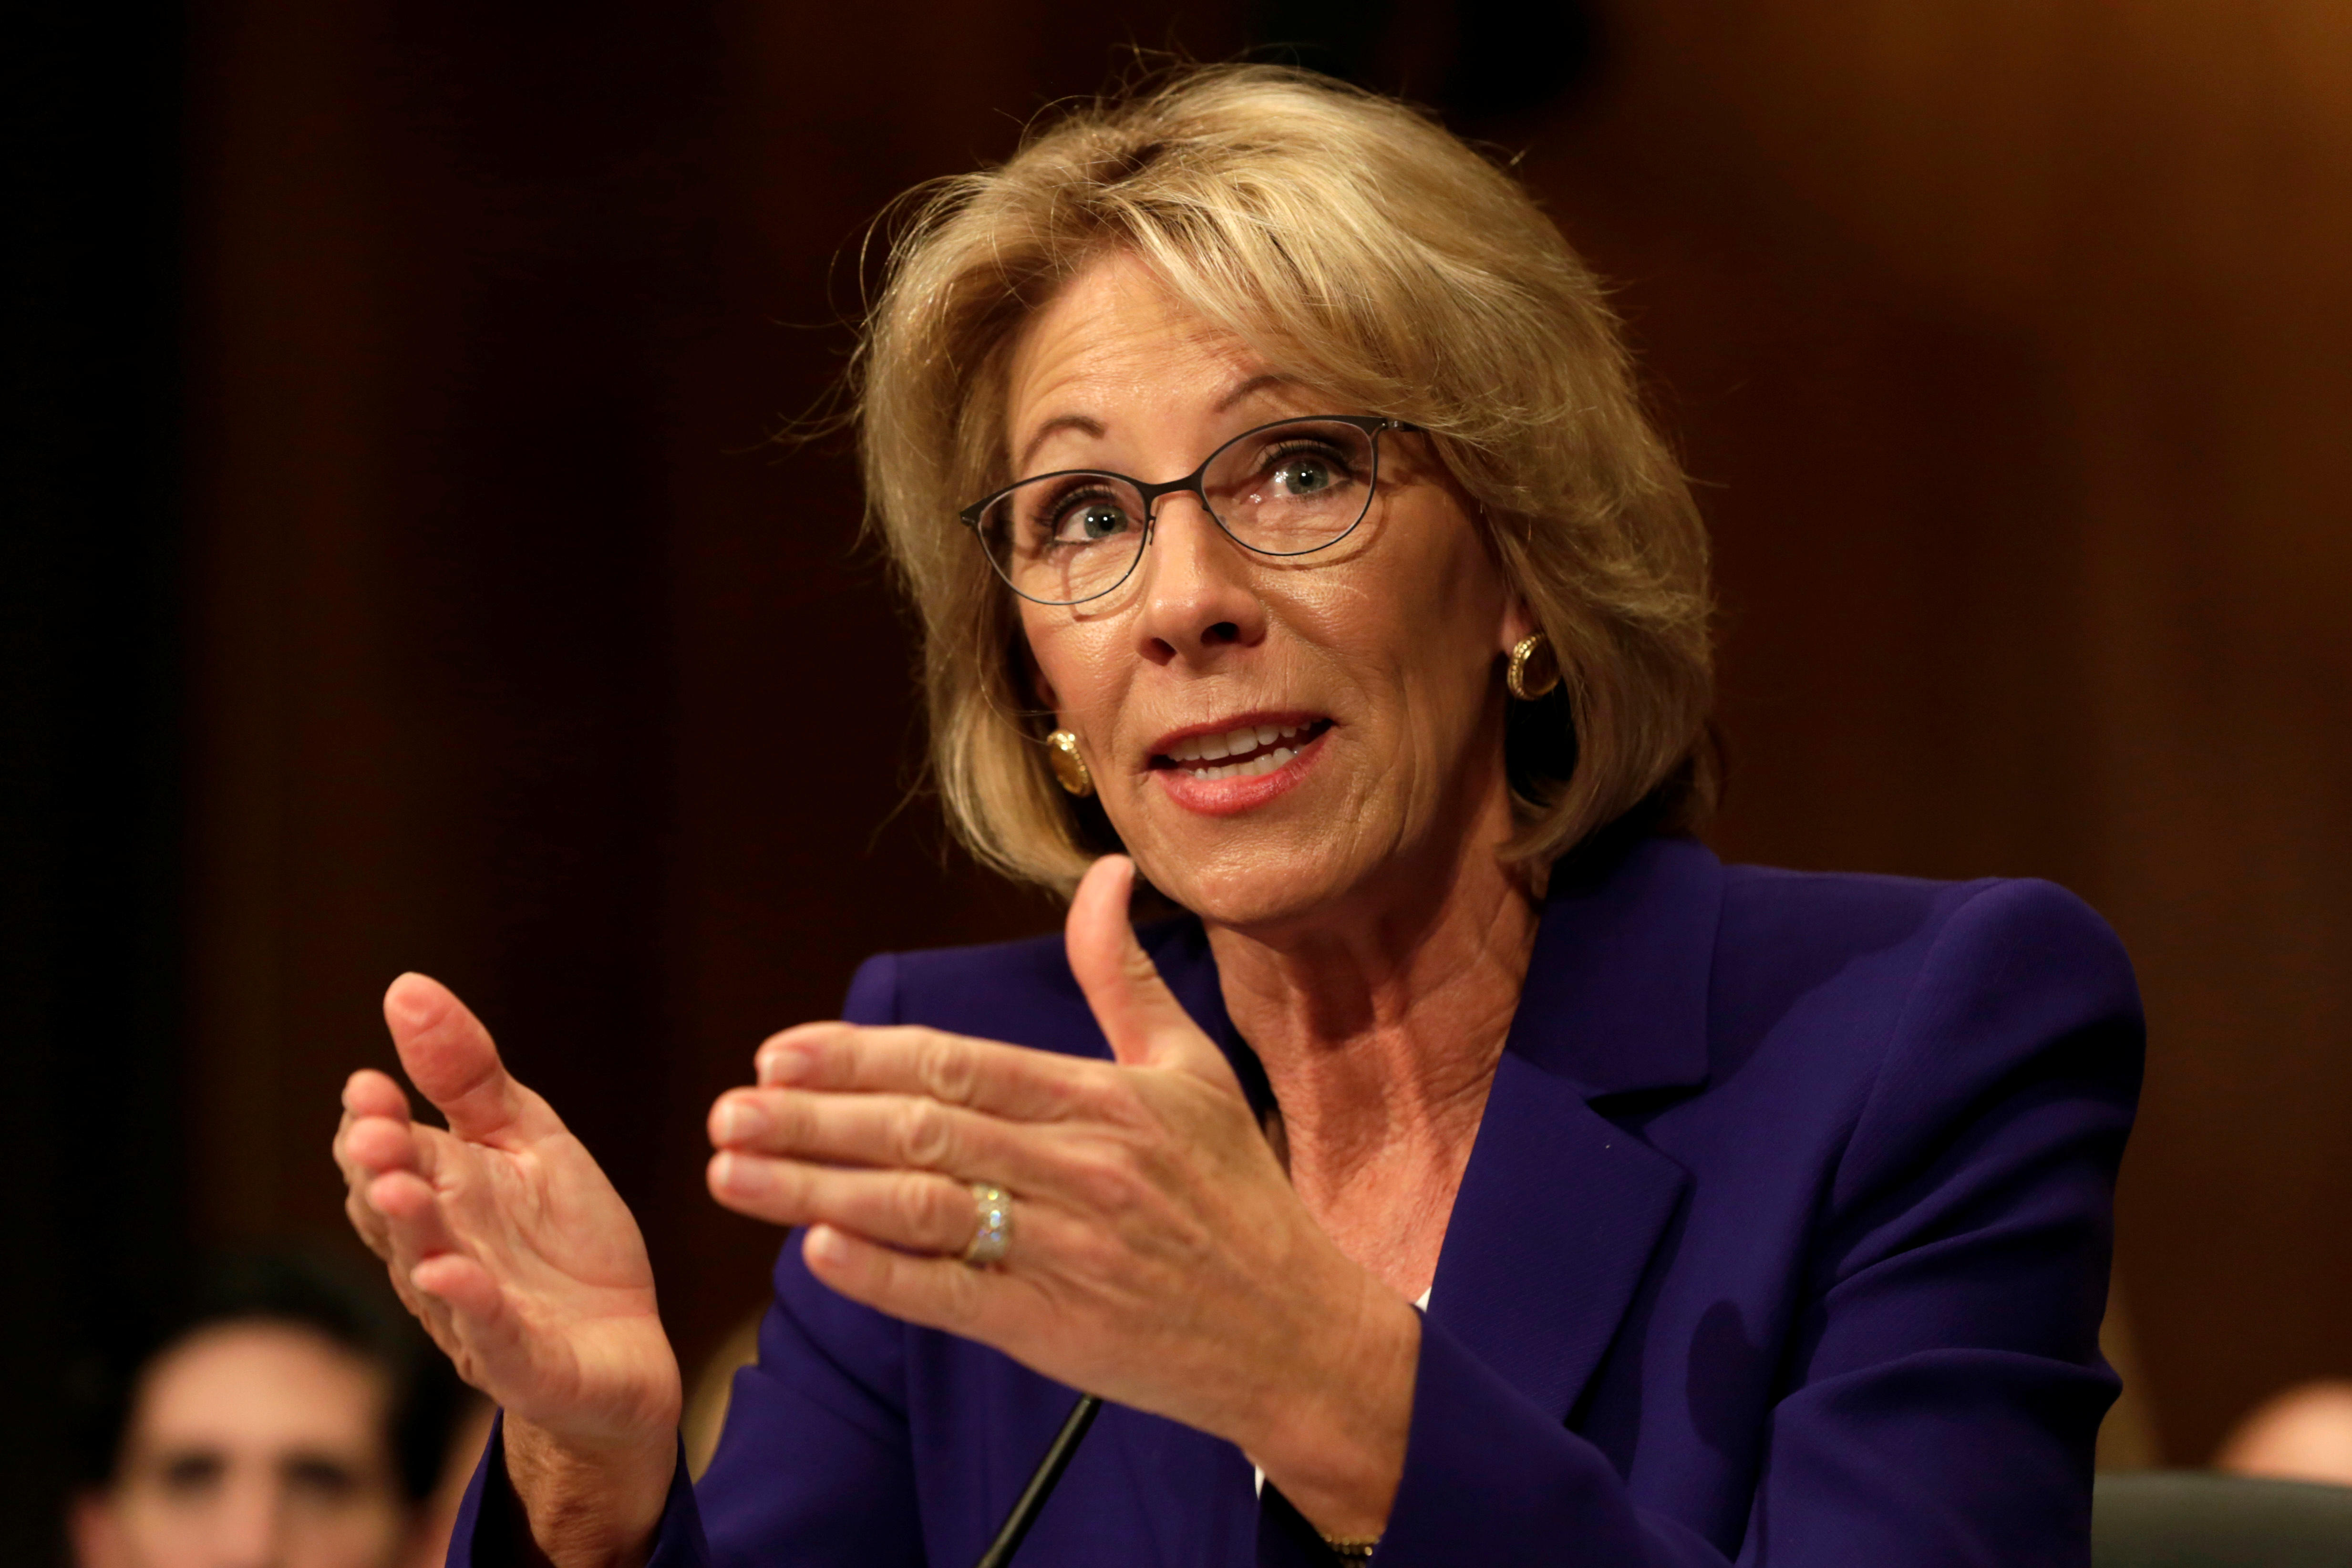 Betsy Devos Trumps Education Pick Has >> Trump Education Pick Blames Staff For Poor Word Choice On Twitter